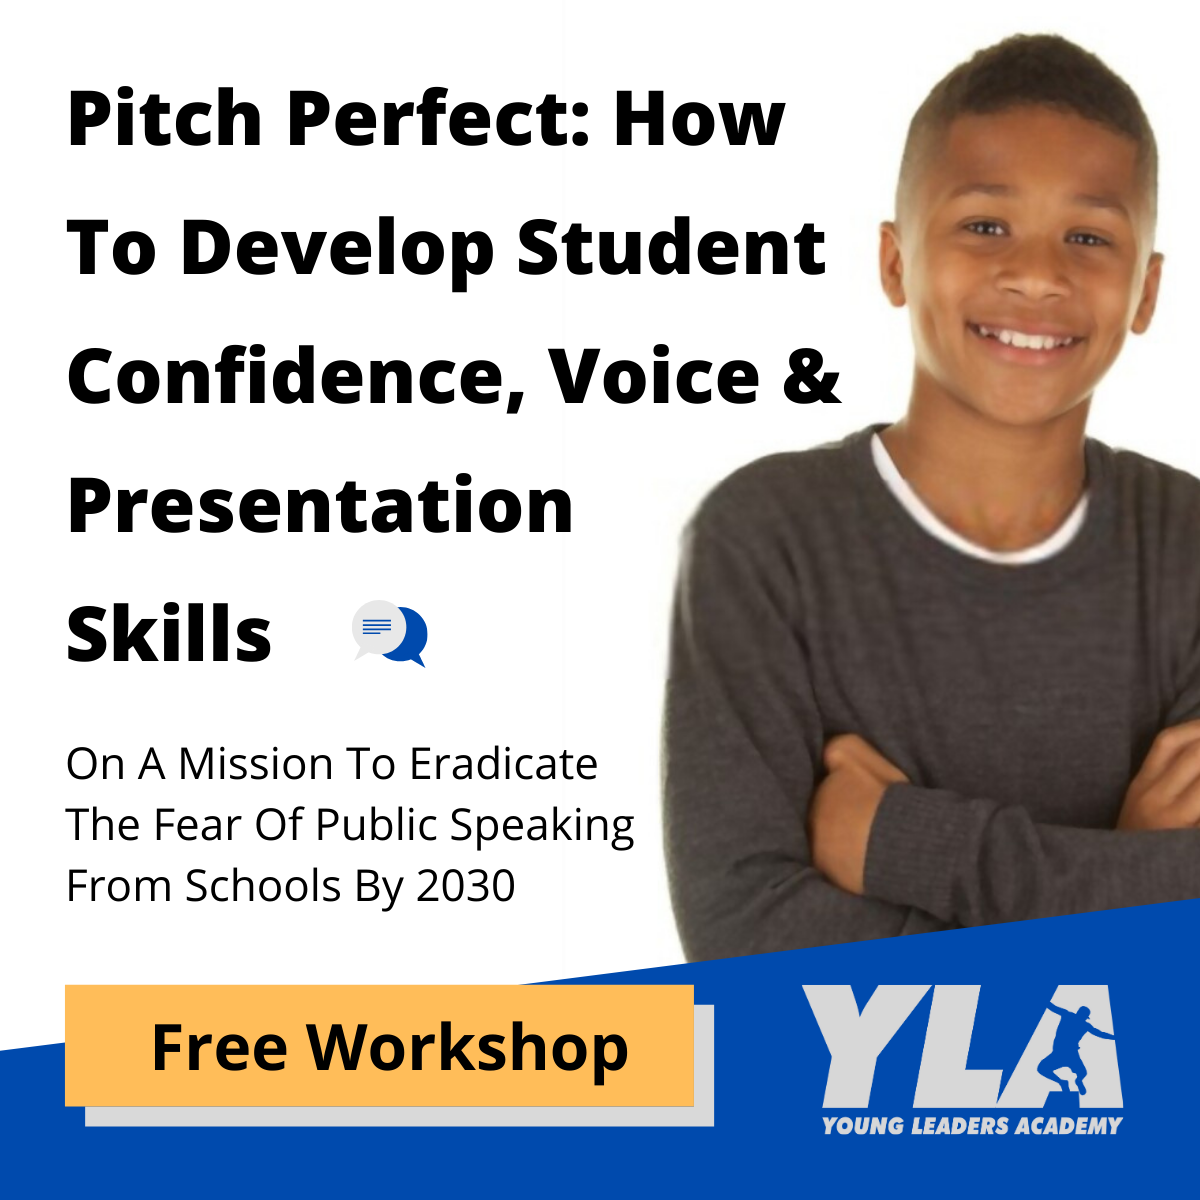 Pitch Perfect, How To Develop Student Voice & Presentation Skills